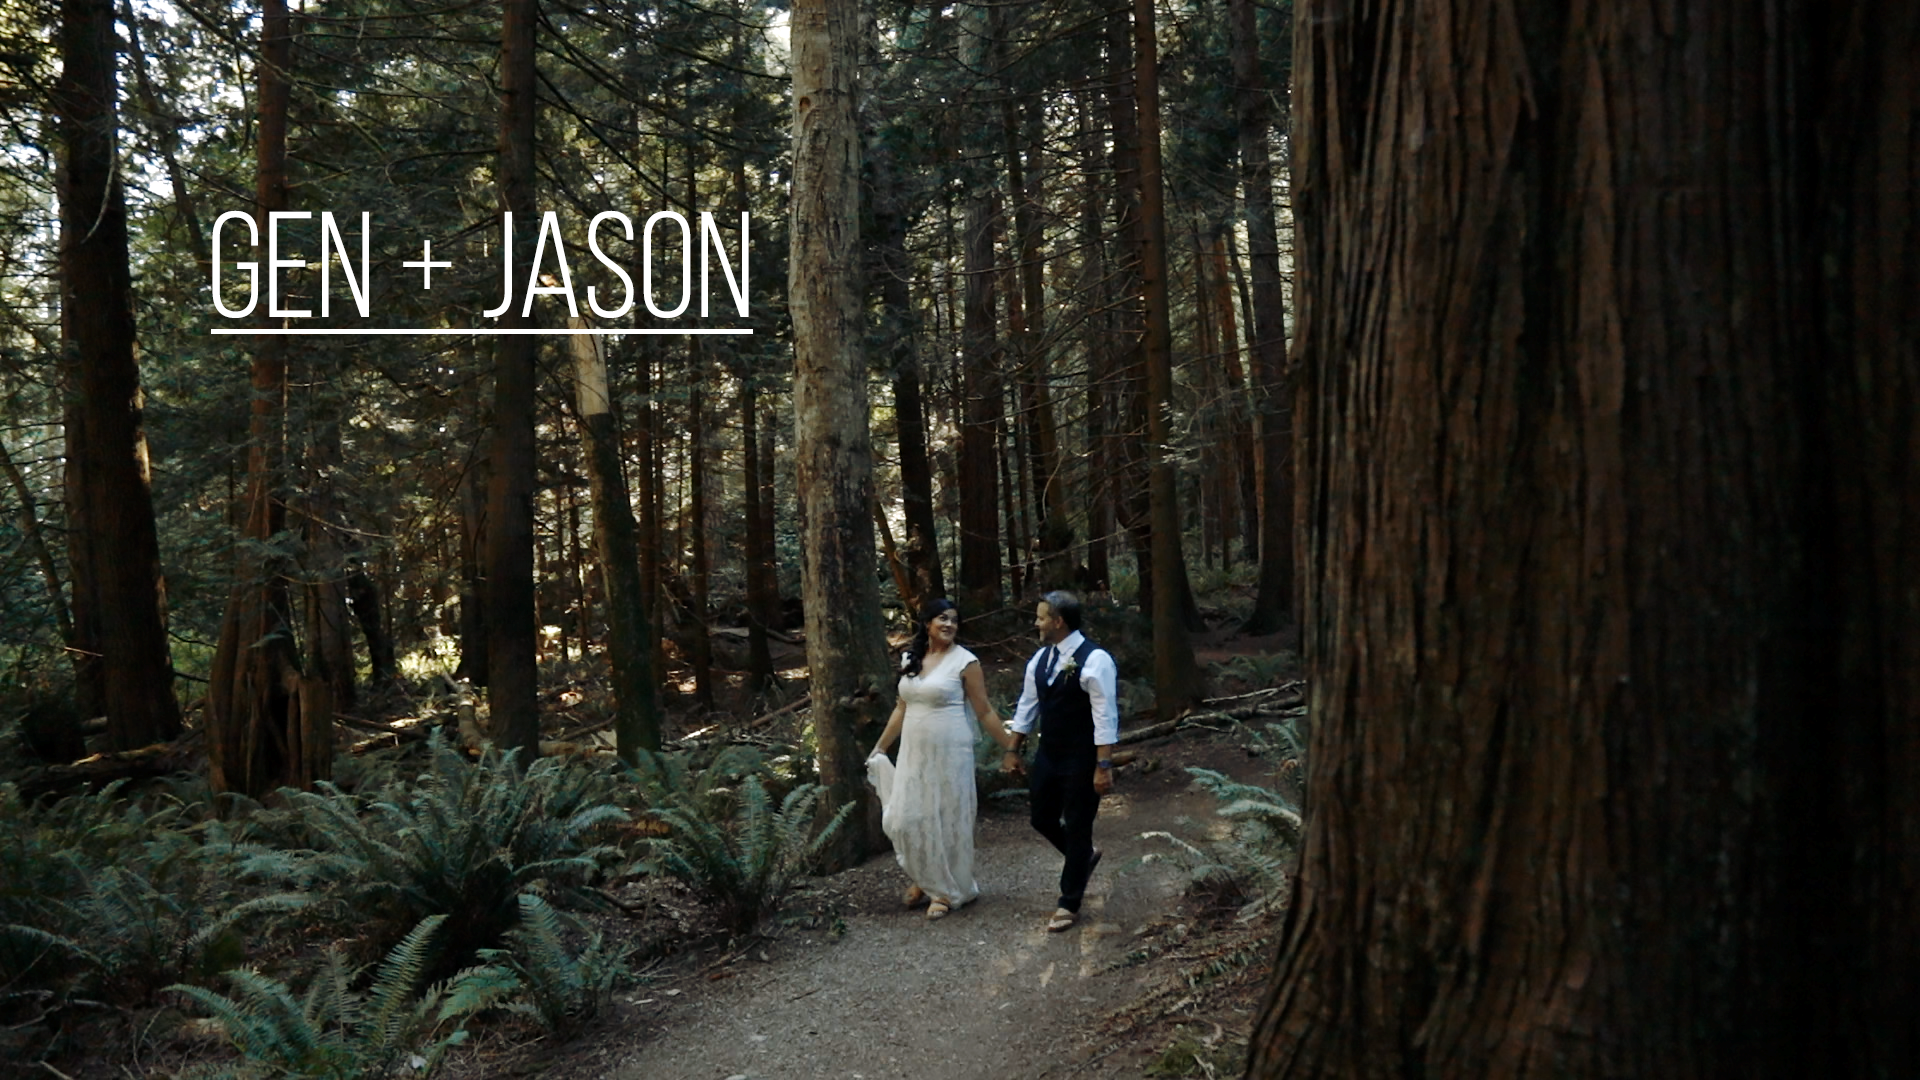 Genevieve + Jason | Sunshine Coast Regional District, Canada | Bakers Beach